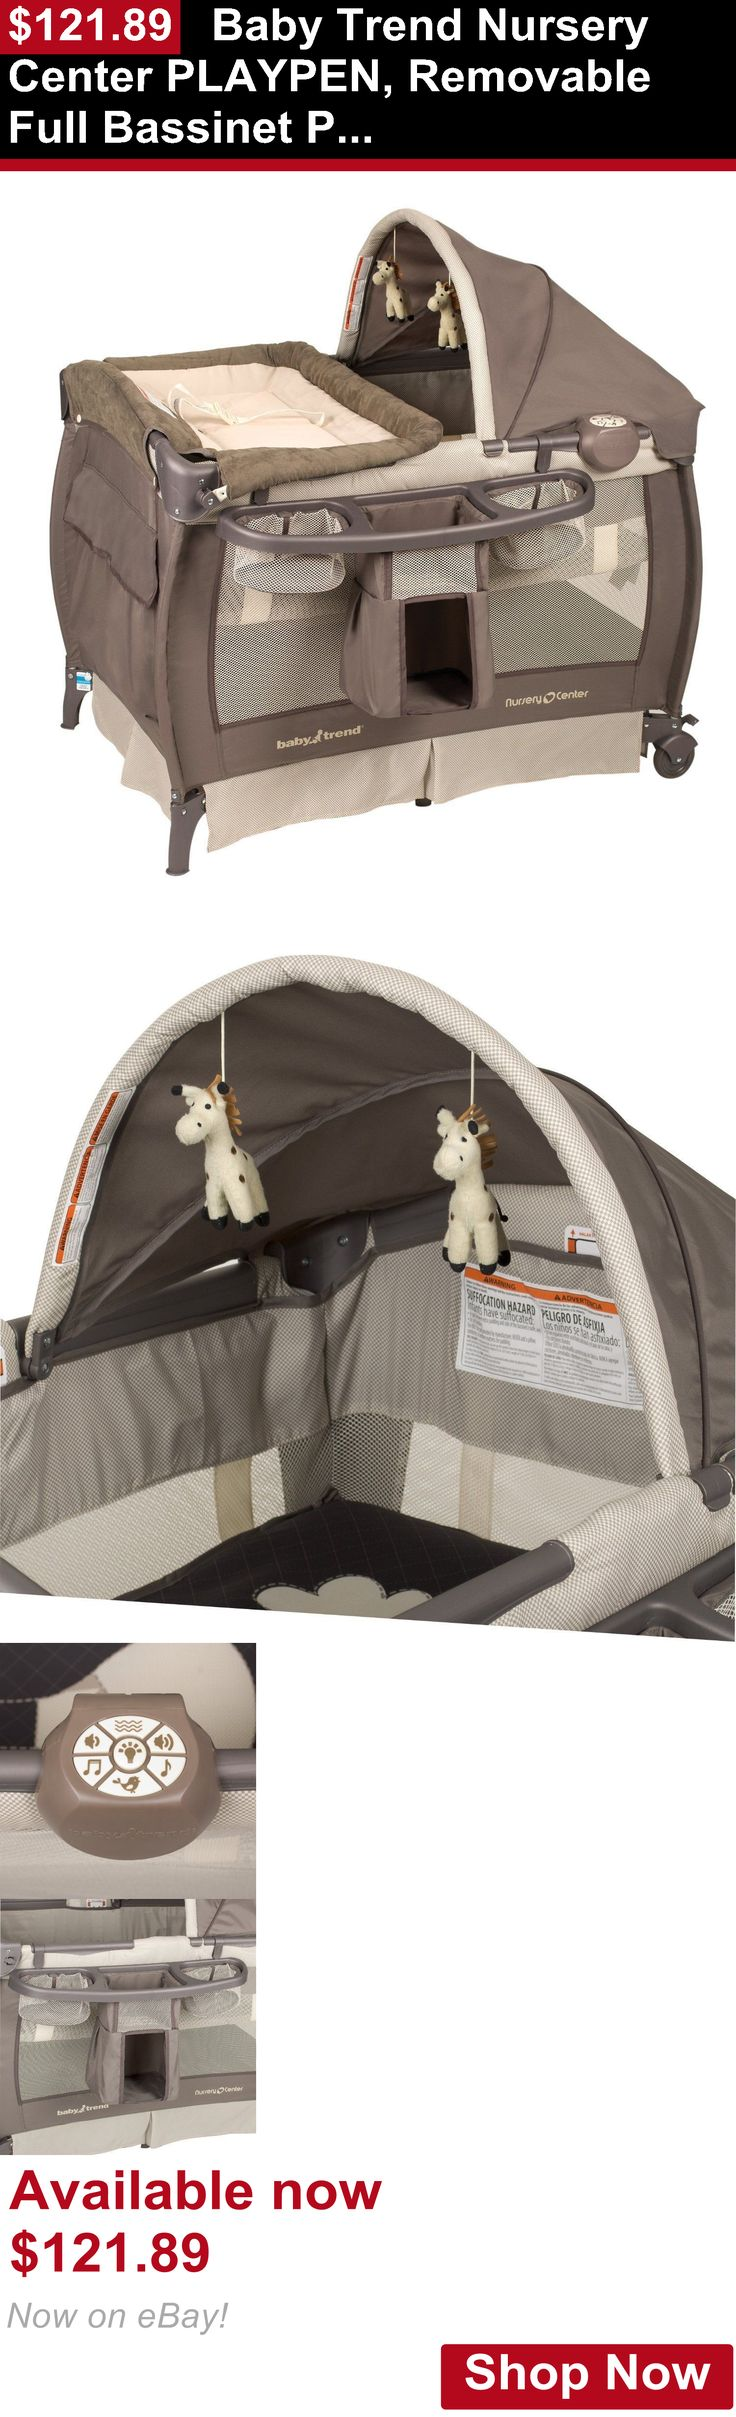 Baby Play pens and play yards: Baby Trend Nursery Center Playpen, Removable Full Bassinet Play Yard, Hudson BUY IT NOW ONLY: $121.89